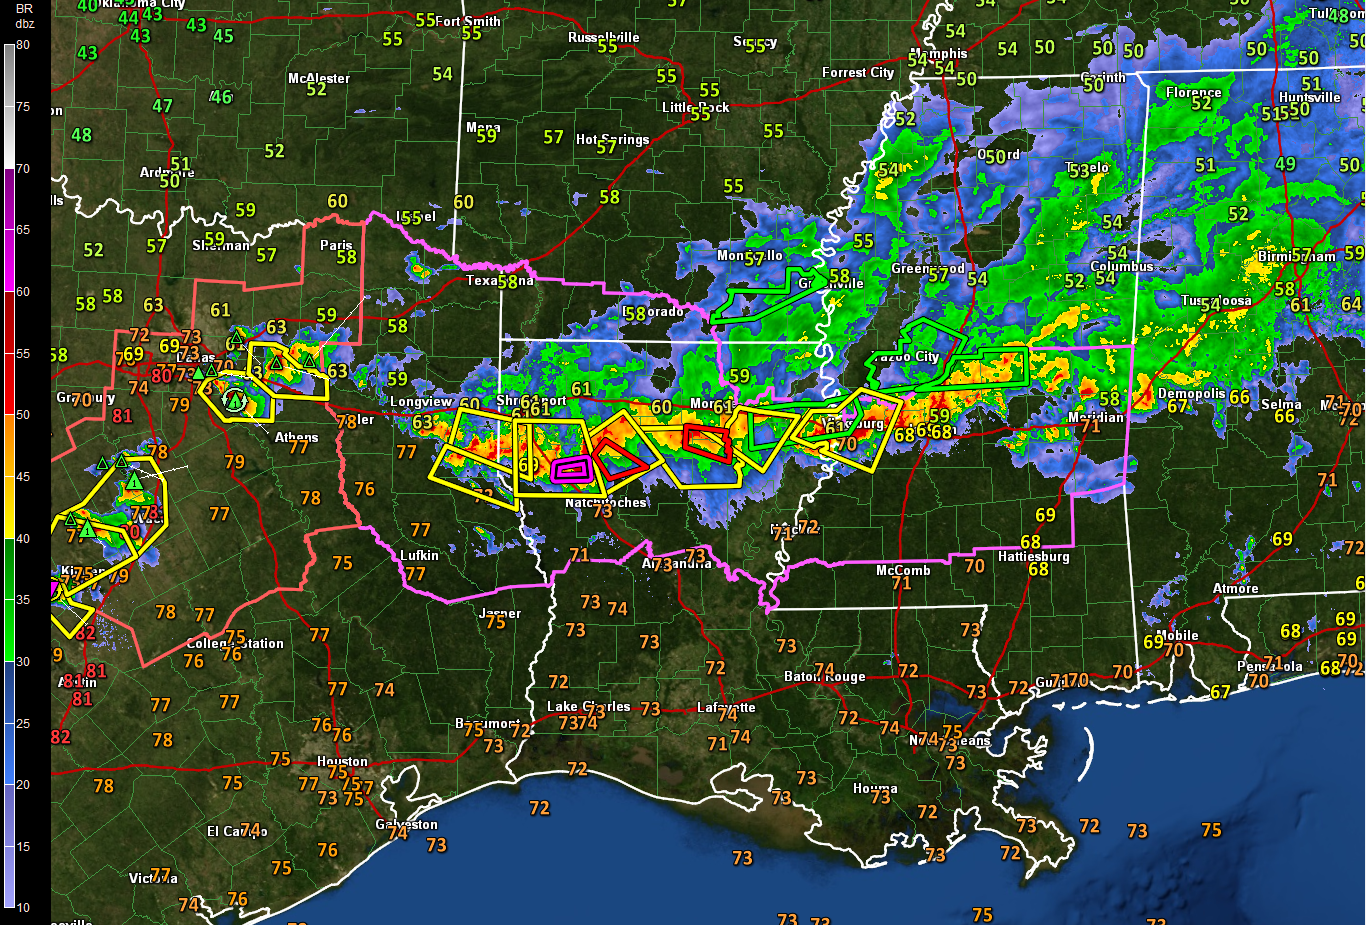 PDS Tornado Warning in Louisiana; Central Alabama Remains ... on lincoln way map, interstate 27 map, interstate 26 map, interstate 30 map, interstate map of mississippi and alabama, interstate 85 map, interstate 10 map, interstate 80 map, interstate 422 map, interstate 44 map, interstate 25 map, interstate 526 map, interstate 75 map, new jersey route 1 map, interstate 70 map, interstate highway map, interstate 74 map, us highway 78 map,